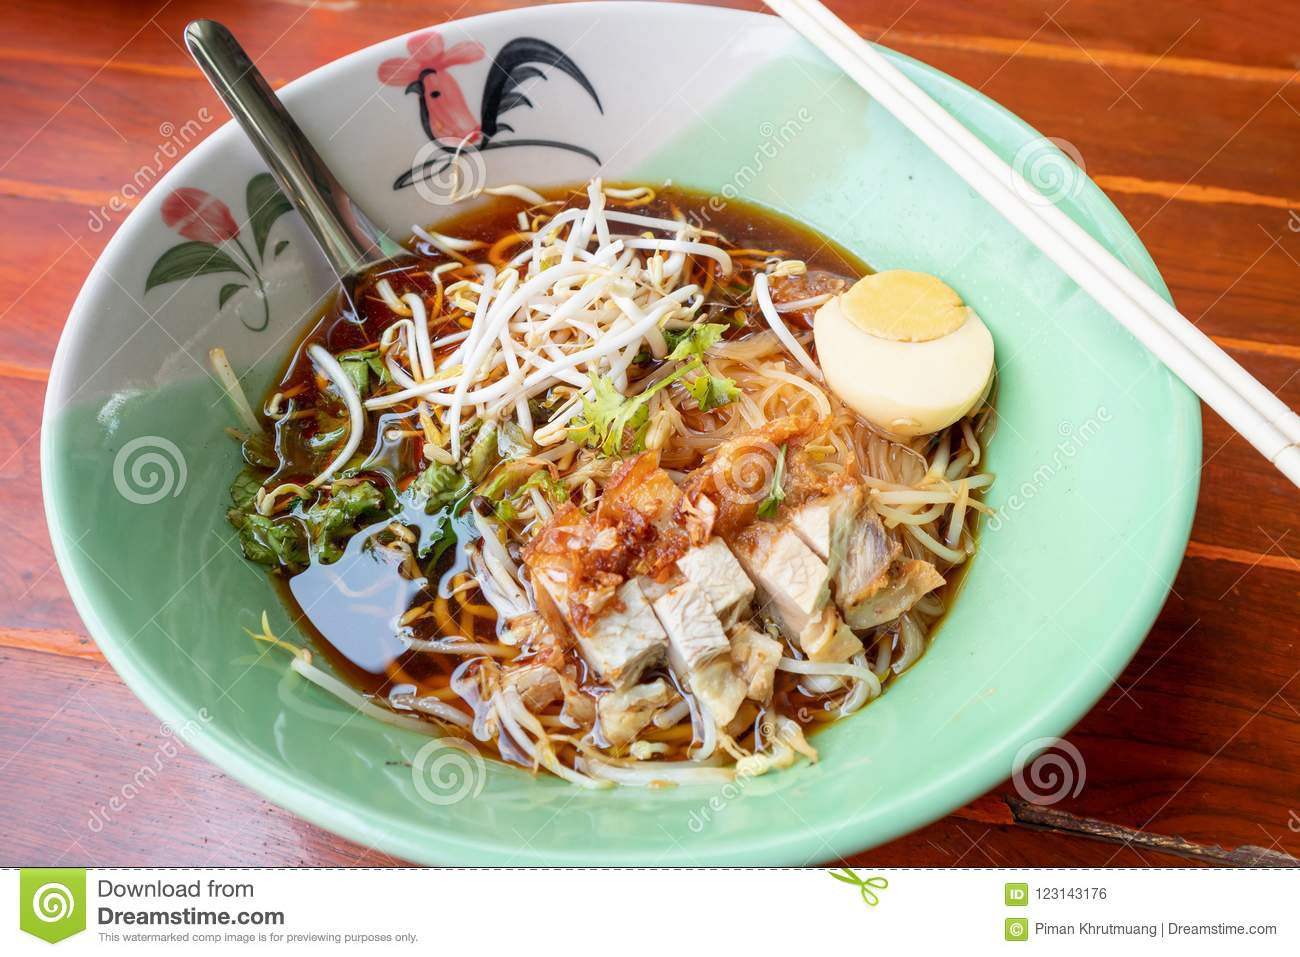 Crispy Pork Noodles With Egg In Bowl Stock Photo - Image of